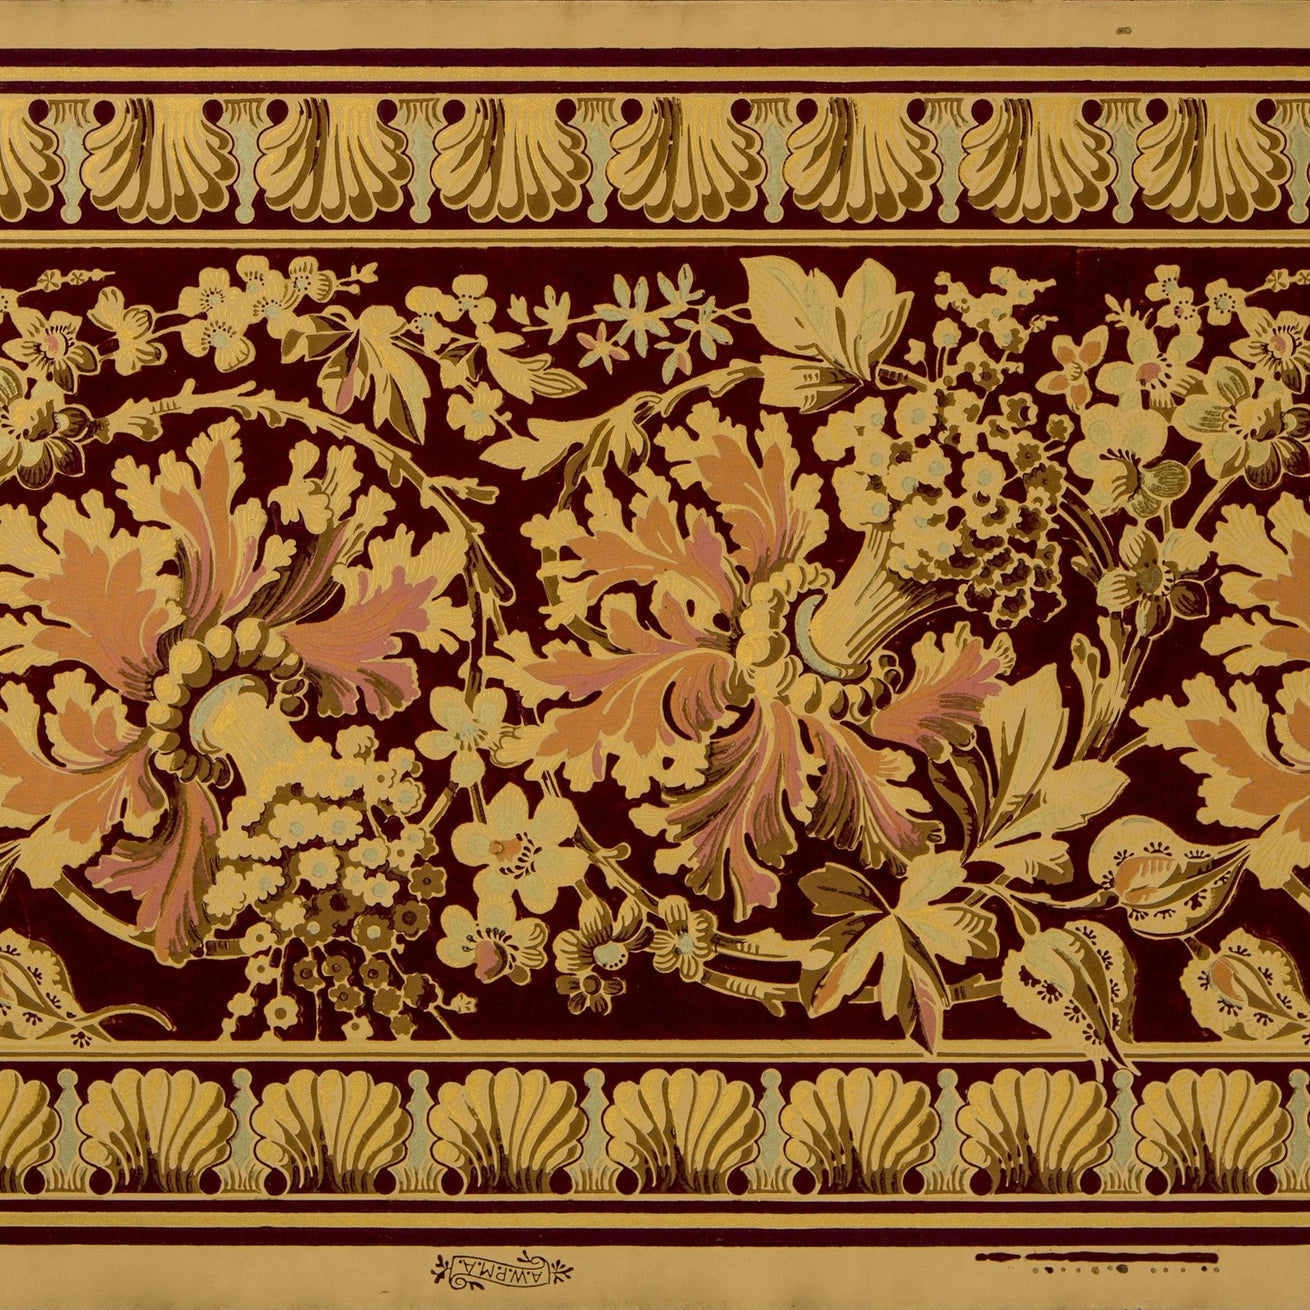 Flocked Metallic Floral/Foliate Border - Antique Wallpaper Remnant